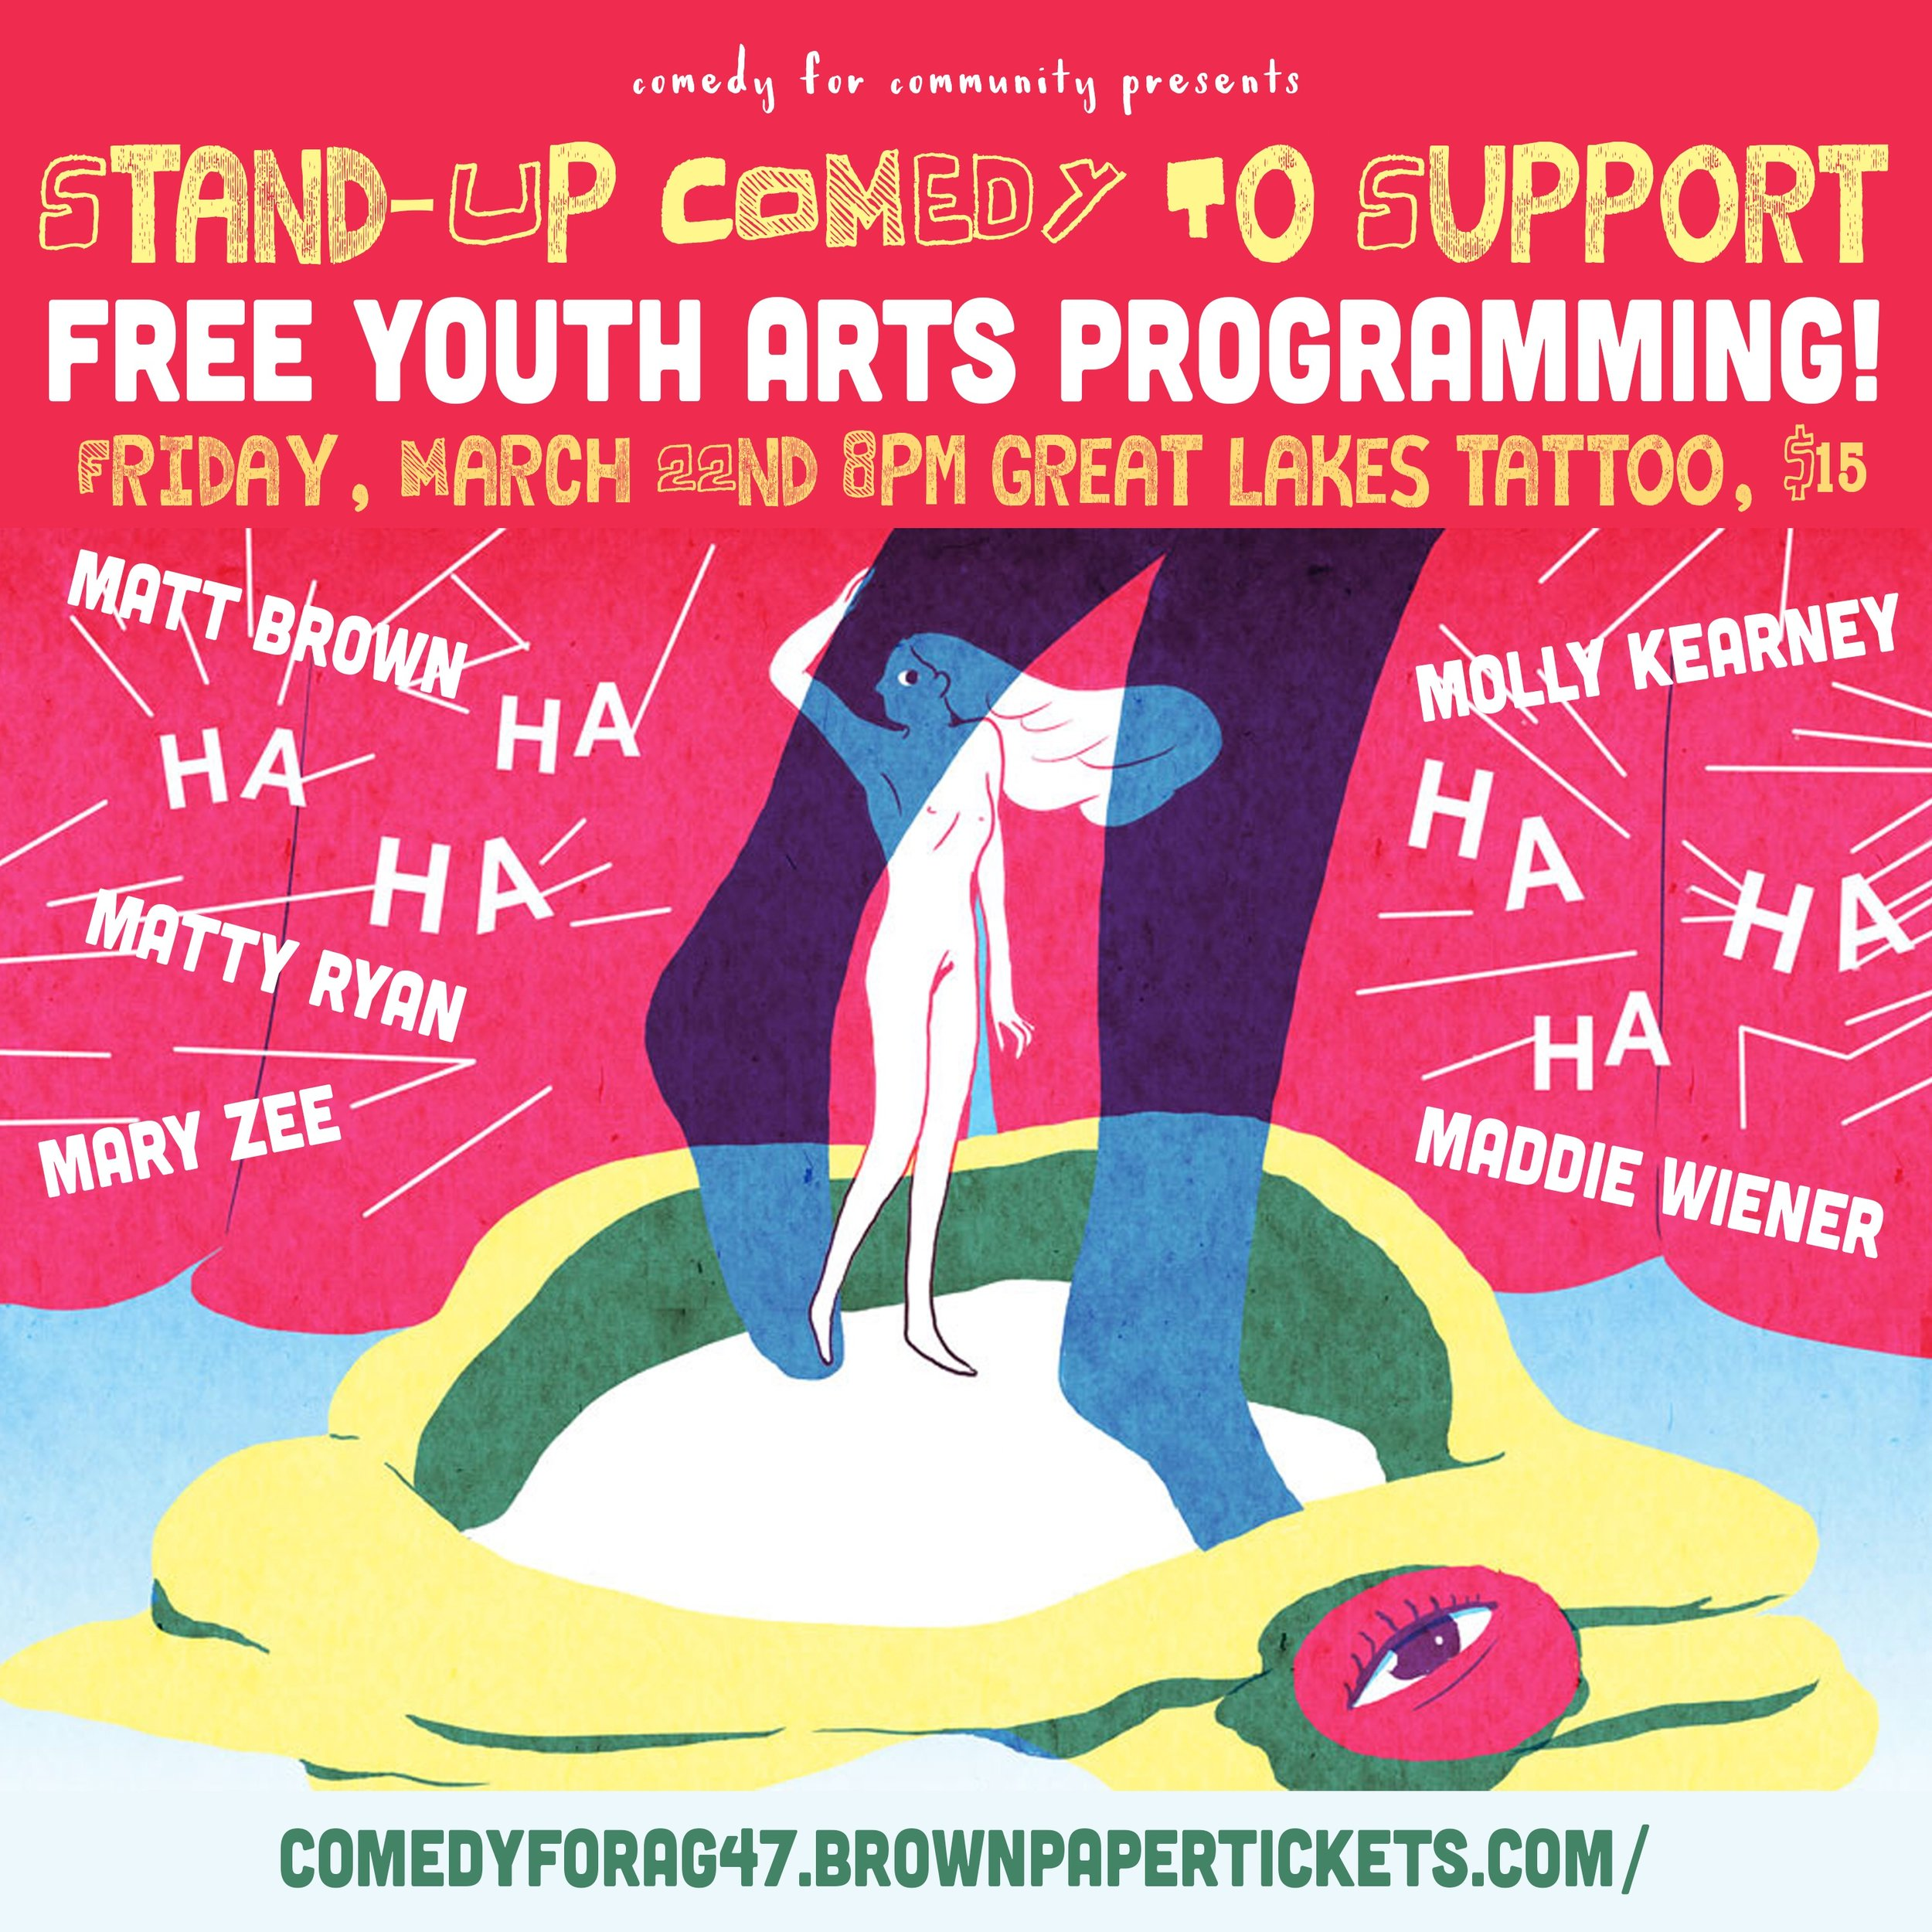 - Comedy For Community: A pop-up comedy show on March 22th at 8:00 at Great Lakes Tattoo. All proceeds benefit AG47. AG47 is a multi-generational art collective that provides free art mentorship and programming for youth artists.Come laugh with Chicago's funniest comics and support arts mentorship and programming for young artists!Get your tickets here!